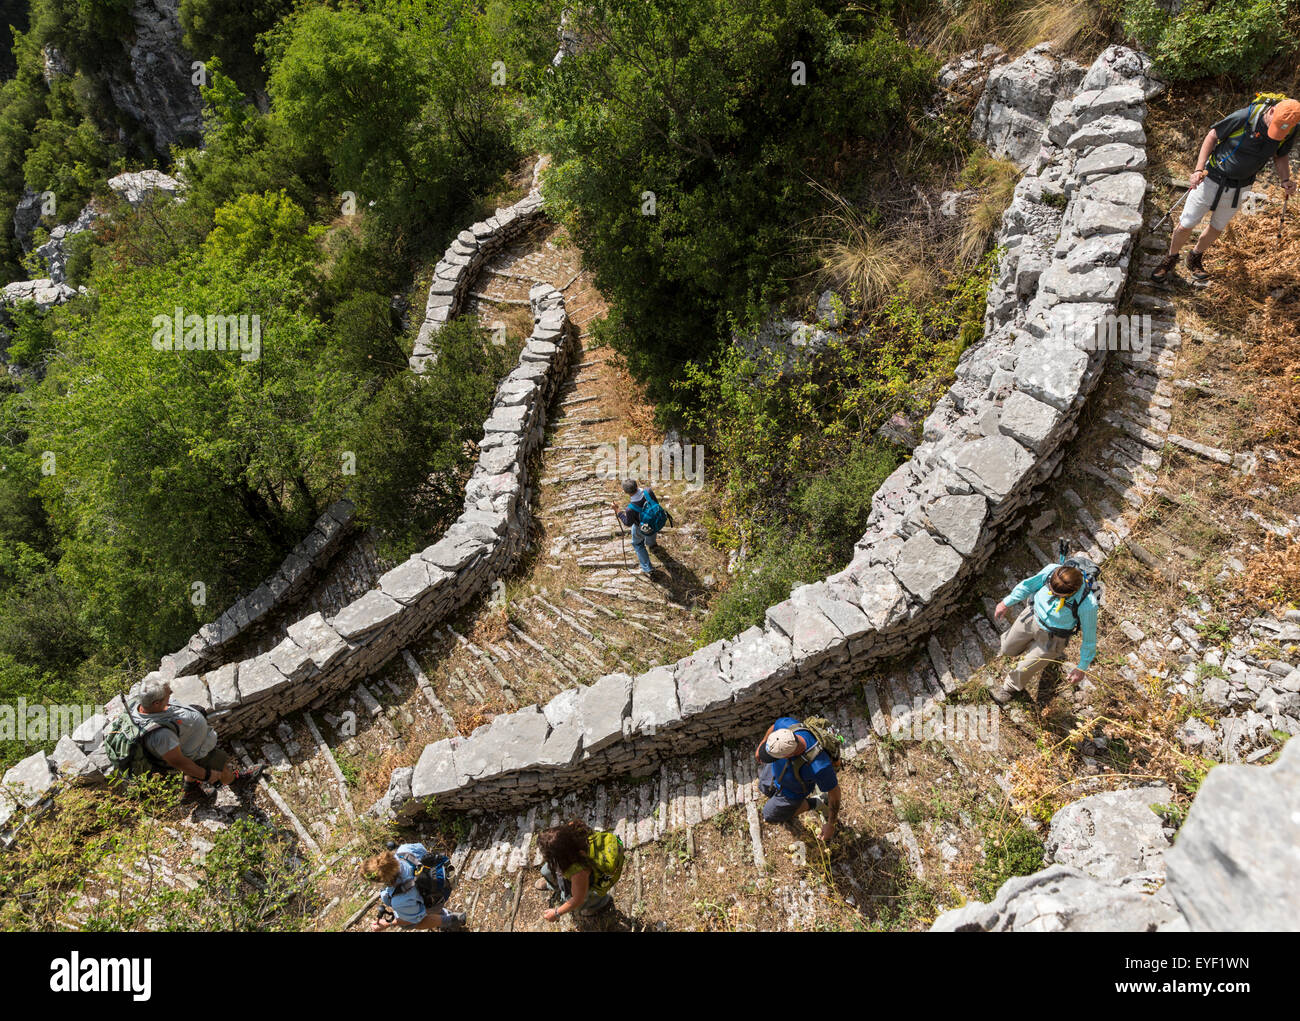 Hikers descend the Vradeto Stairs, a 17th Century stone mule trail in the Zagoria region of Greece. - Stock Image